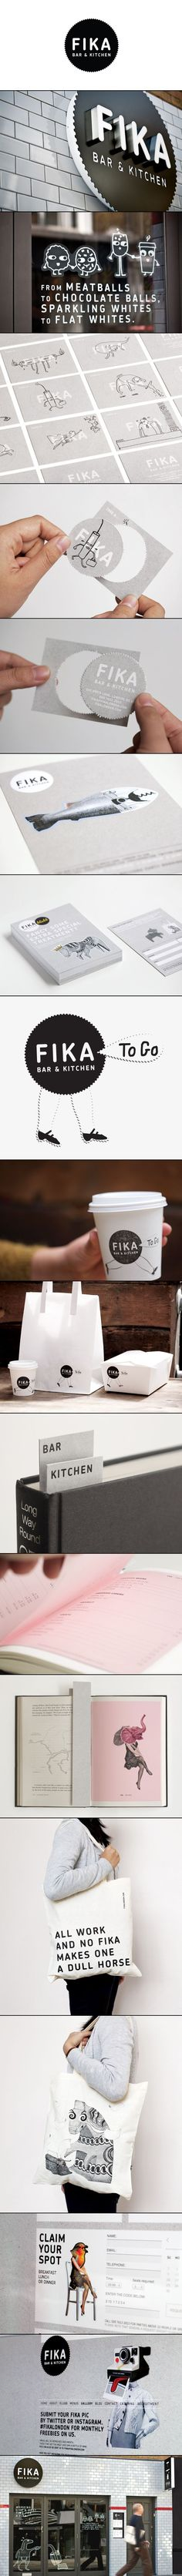 "Fika Bar and Kitchen takes the idea of a ""coffee break"" to a whole new level. #Branding #London #Retail 